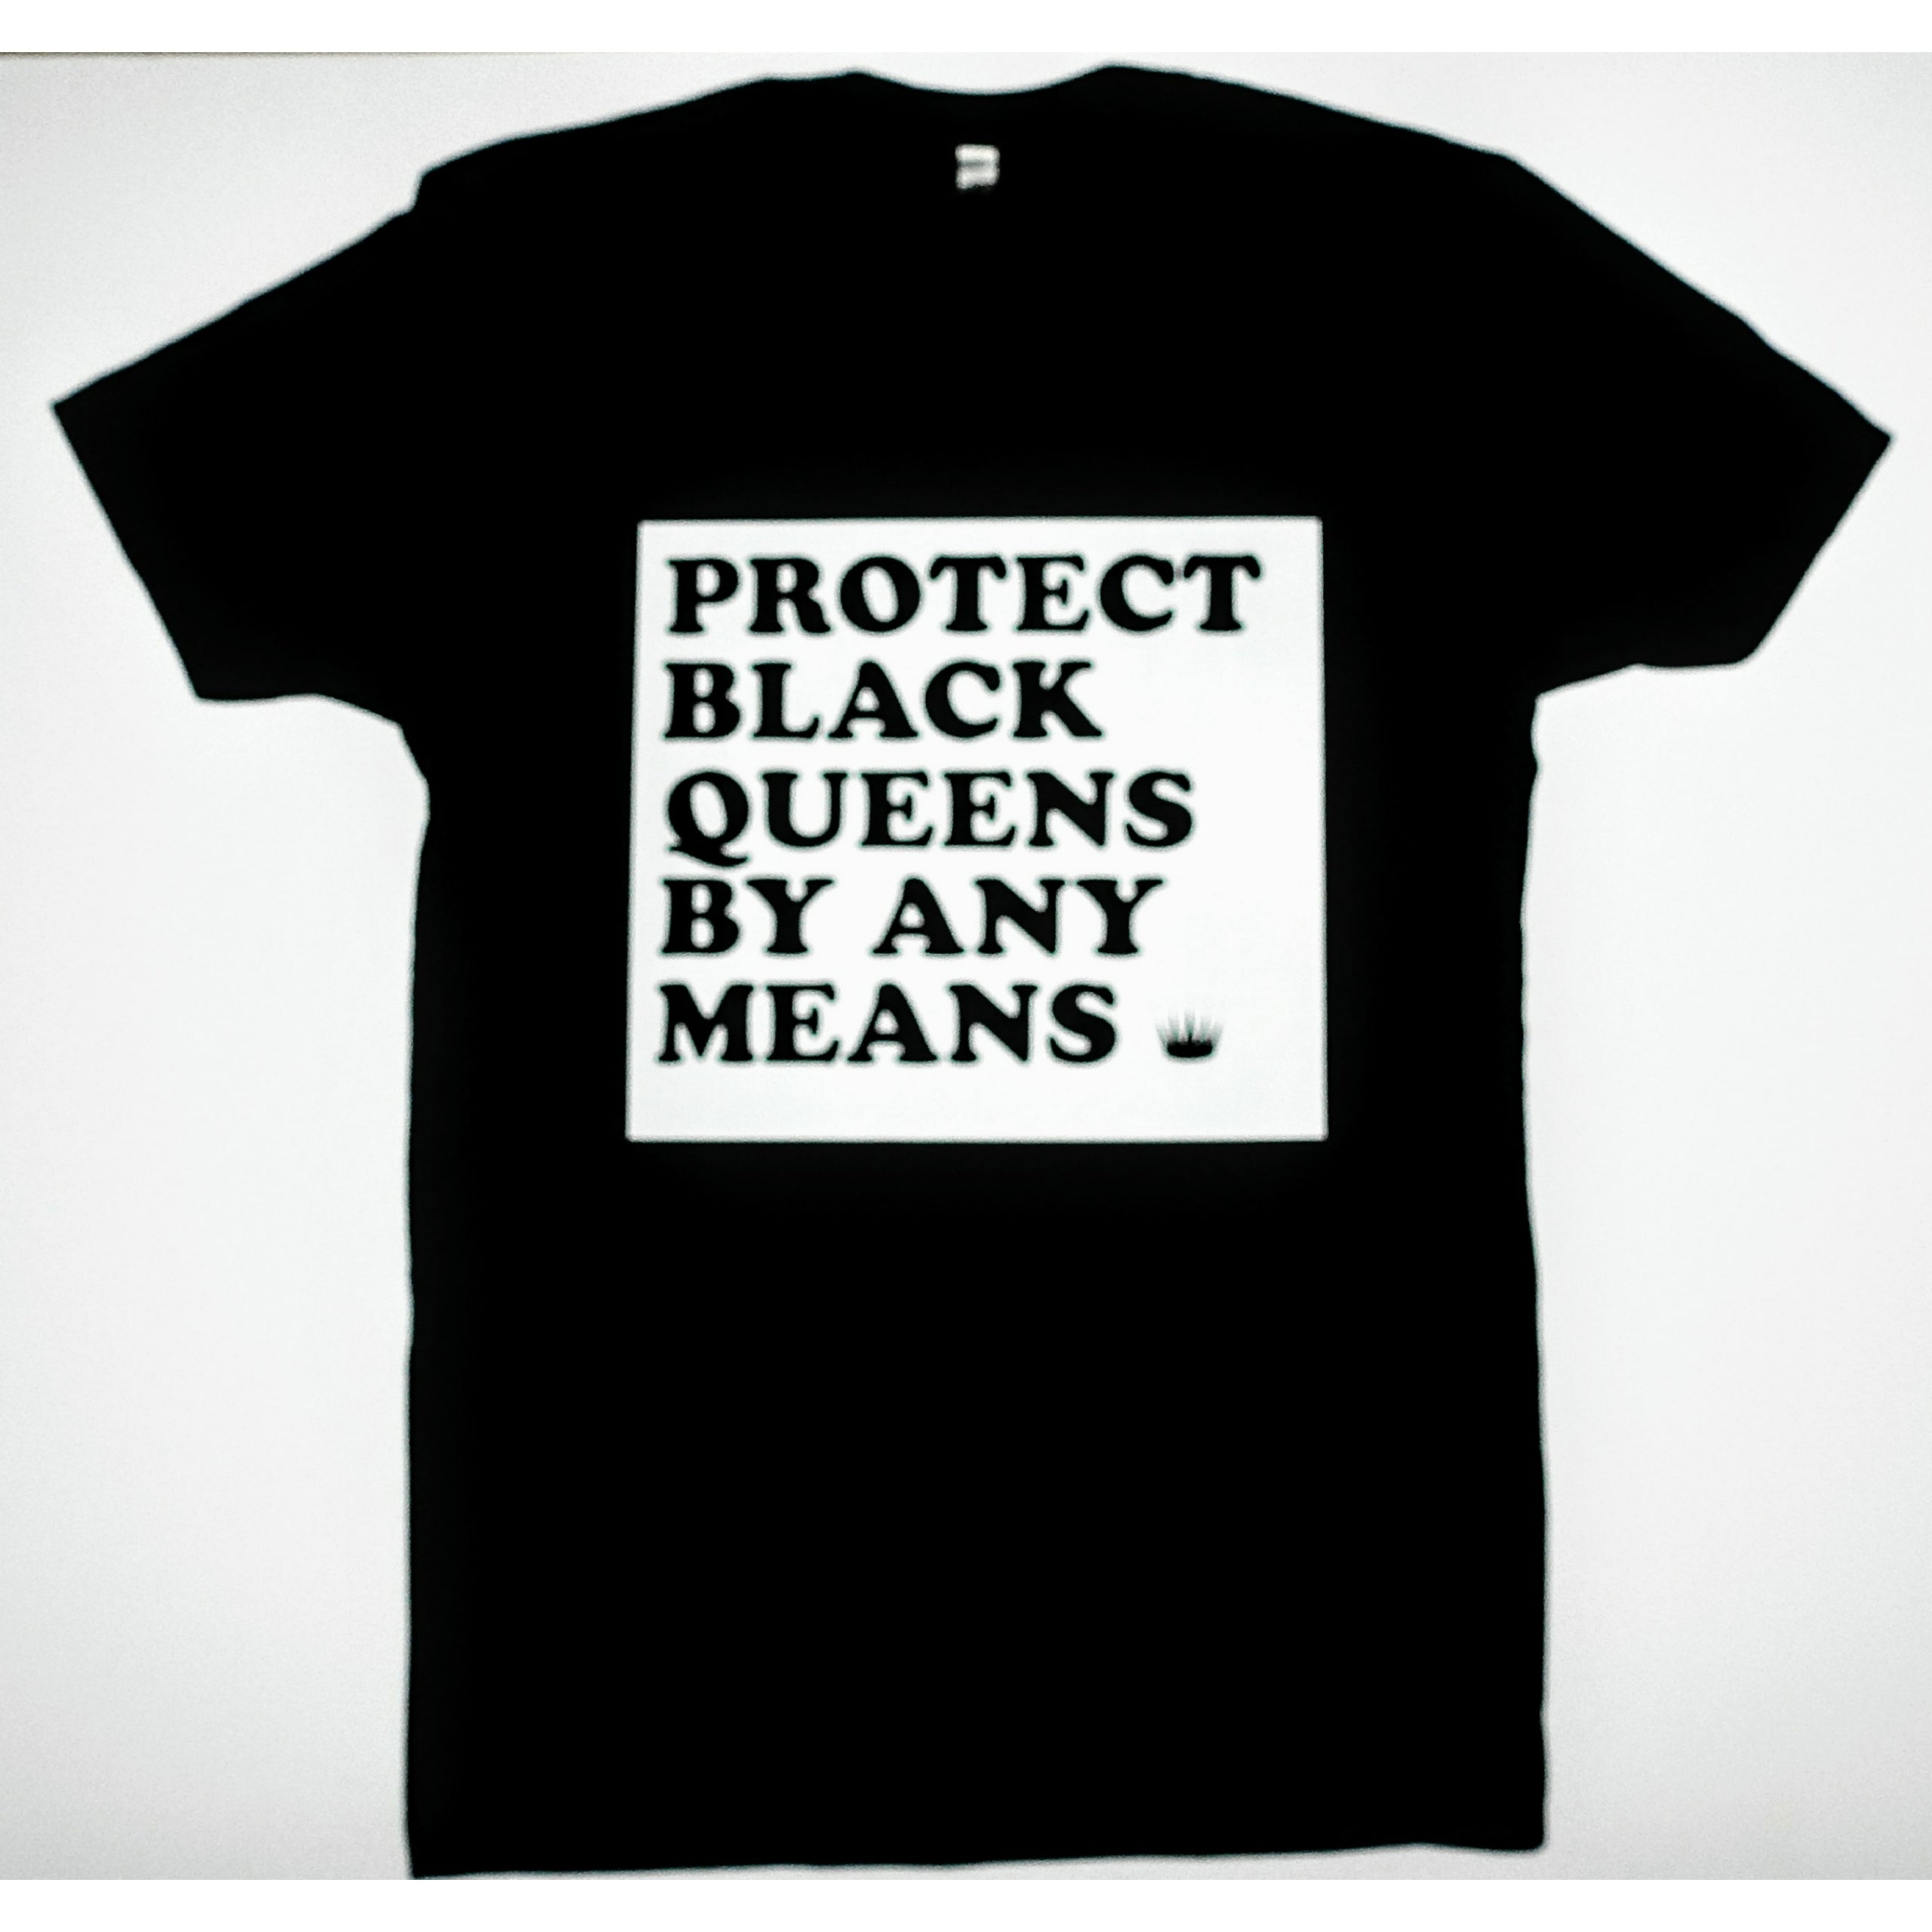 Protect Black Queens By Any Means (Clearance)